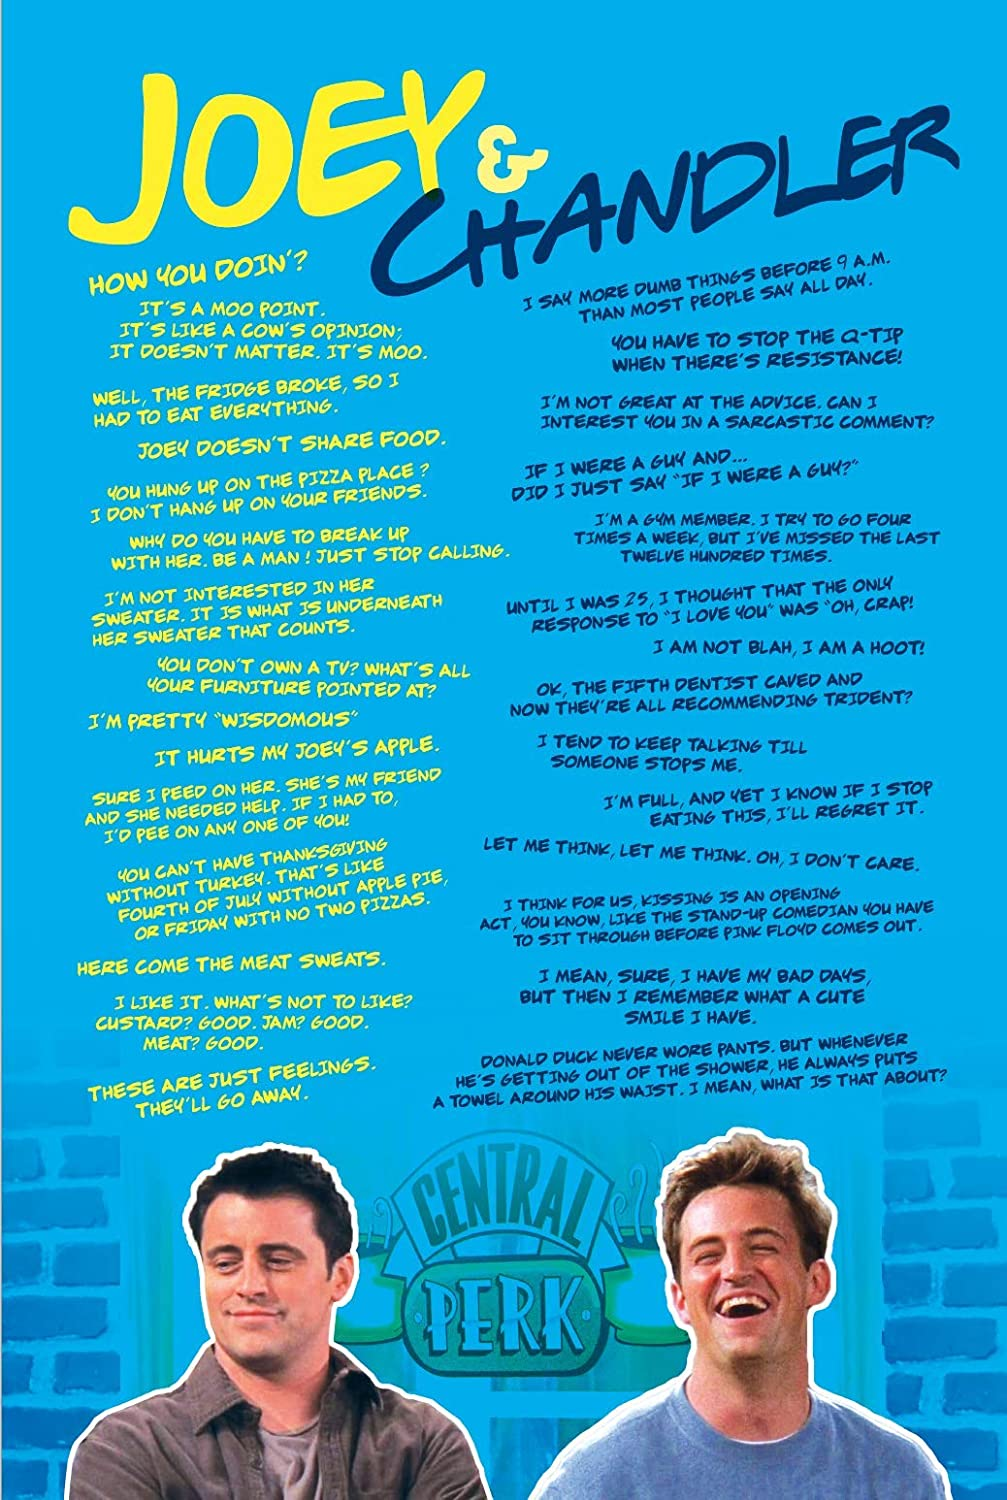 Cool TV Props New Friends Poster - Friends Merchandise TV Show Poster- Joey and Chandler Posters - Friends Show Gifts and Decor (Joey & Chandler Quotes)